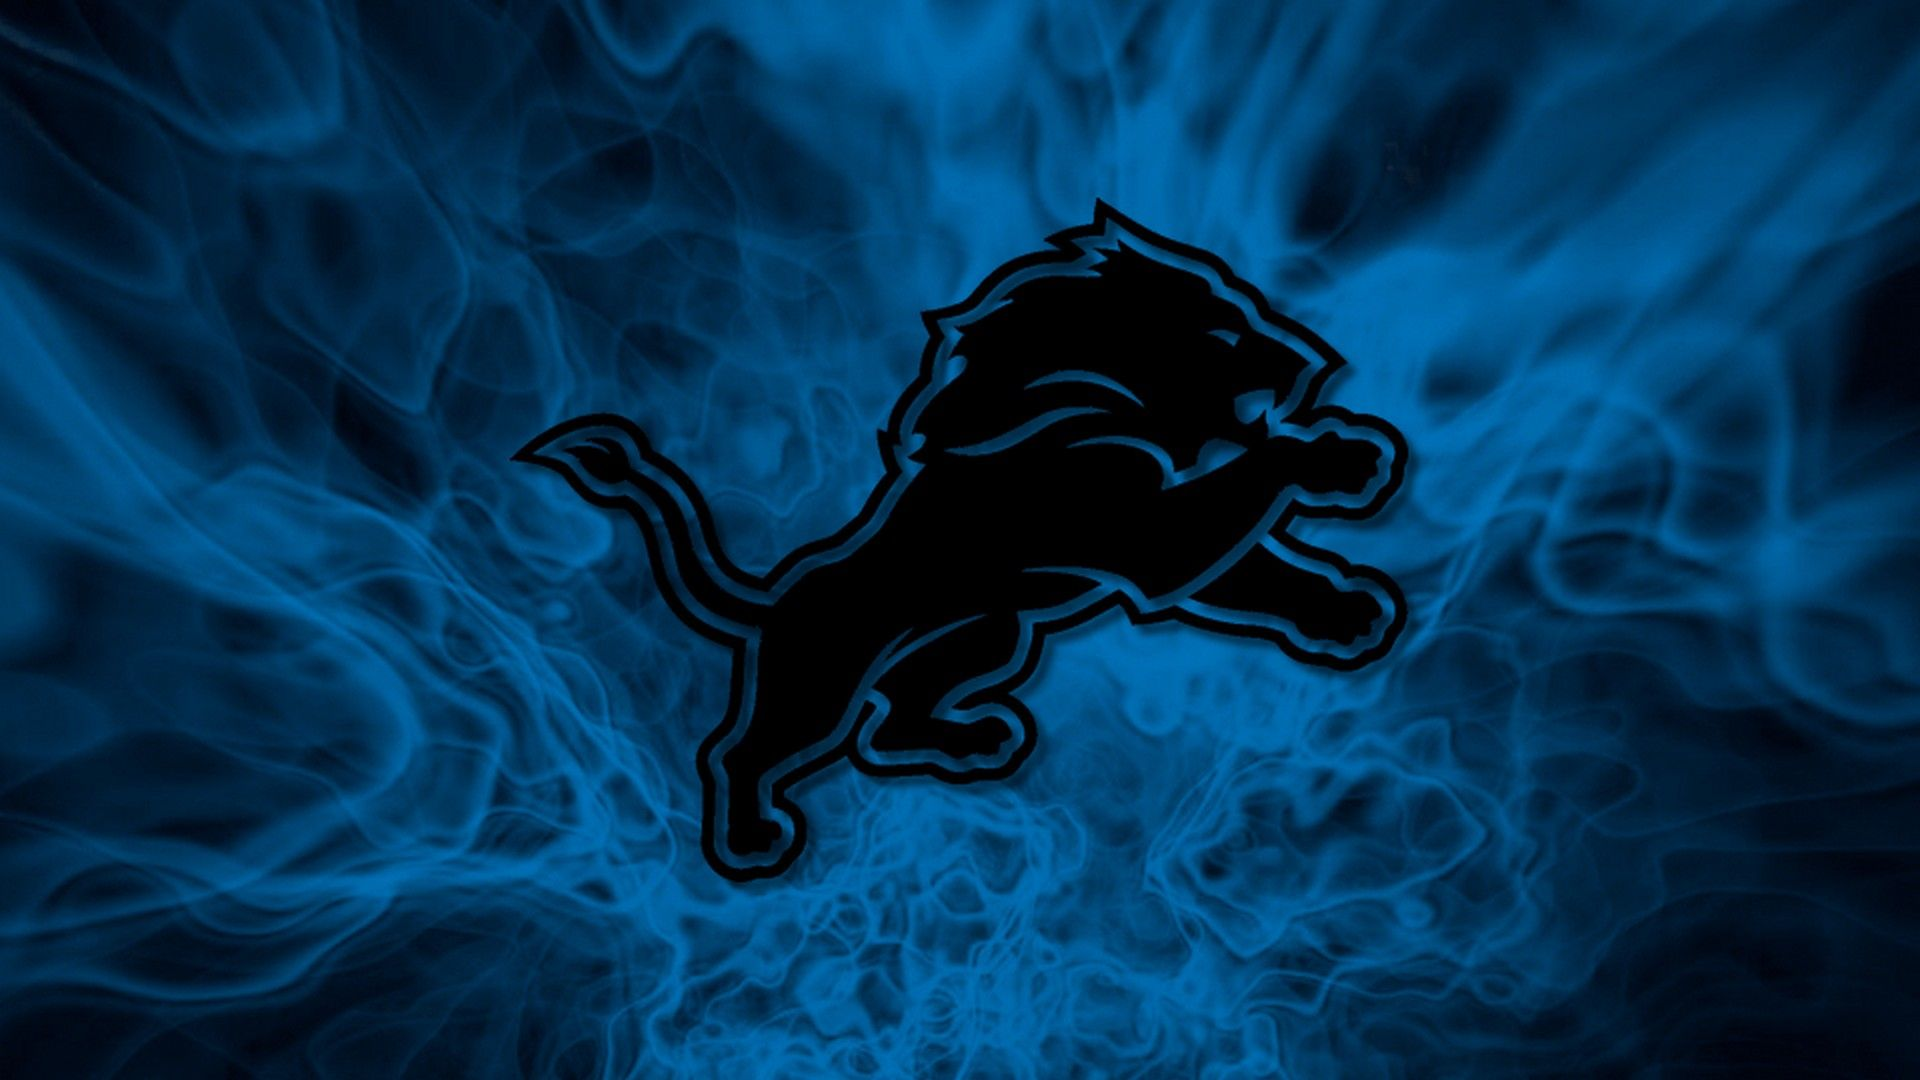 Detroit Lions Desktop Wallpaper | Wallpapers | Pinterest | Detroit lions wallpaper, Detroit ...